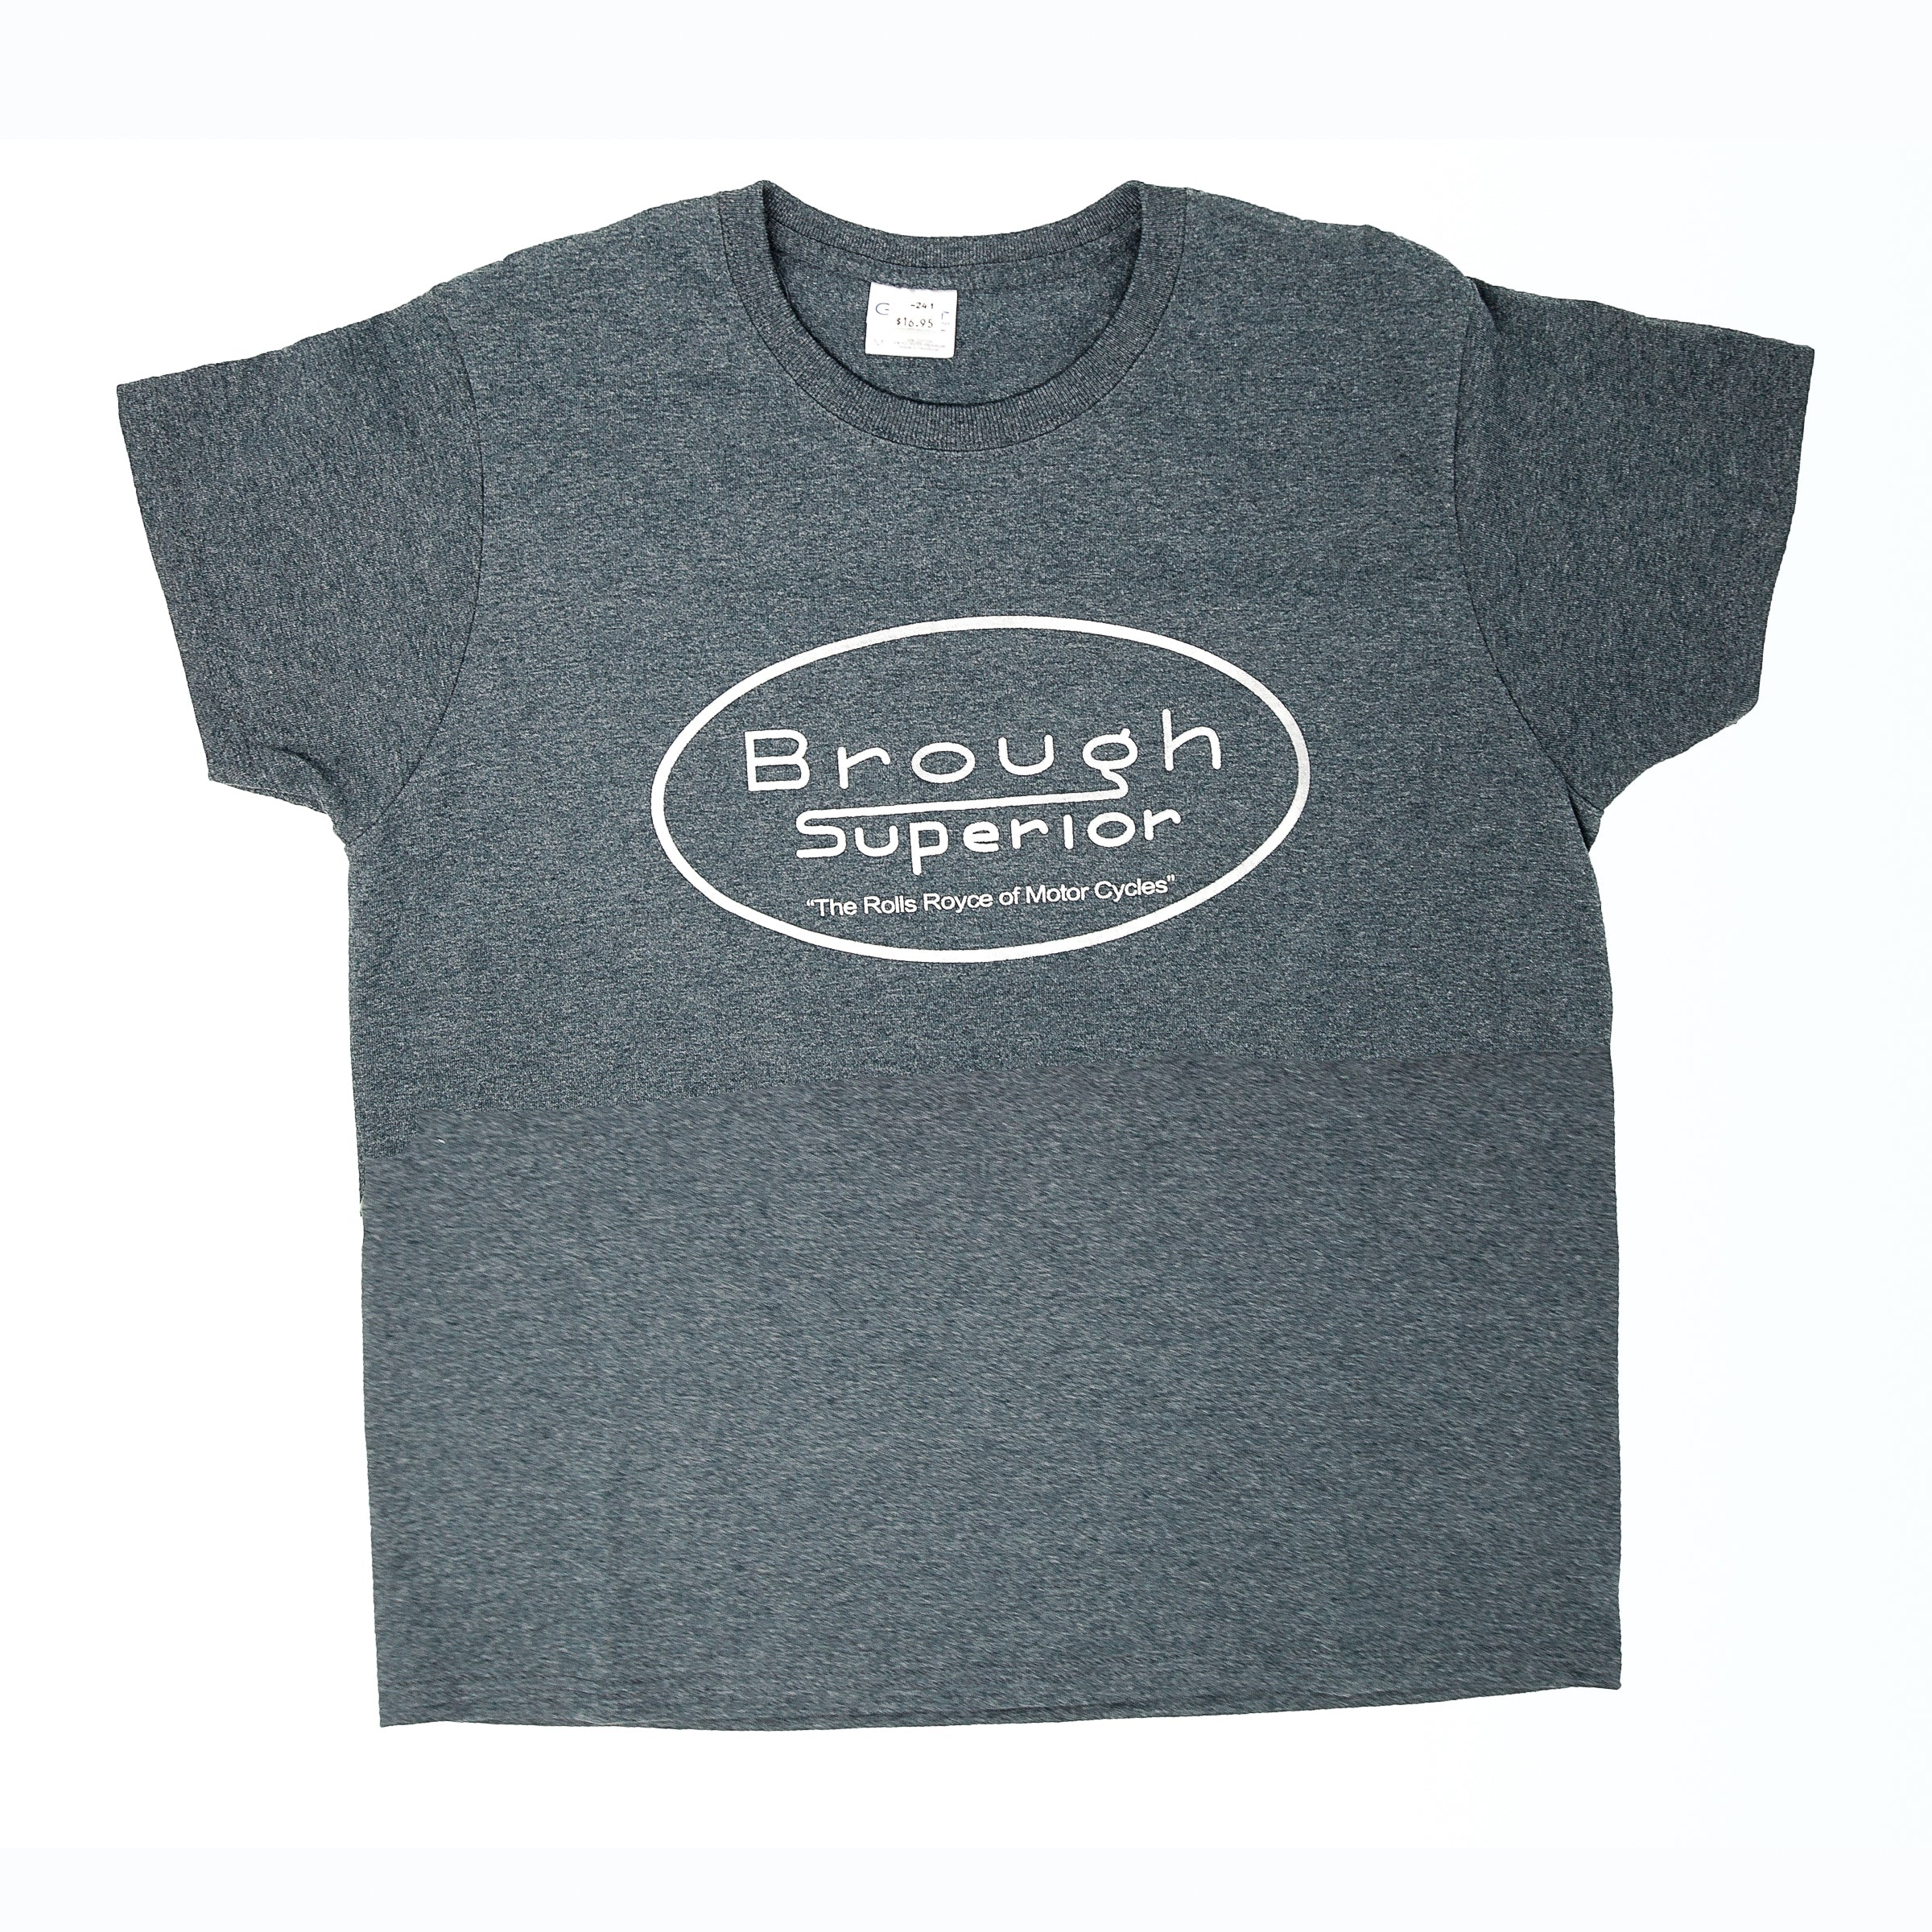 "Dreamcycle Motorcycle Museum |  ""Brough Superior"" Tshirt on white background."